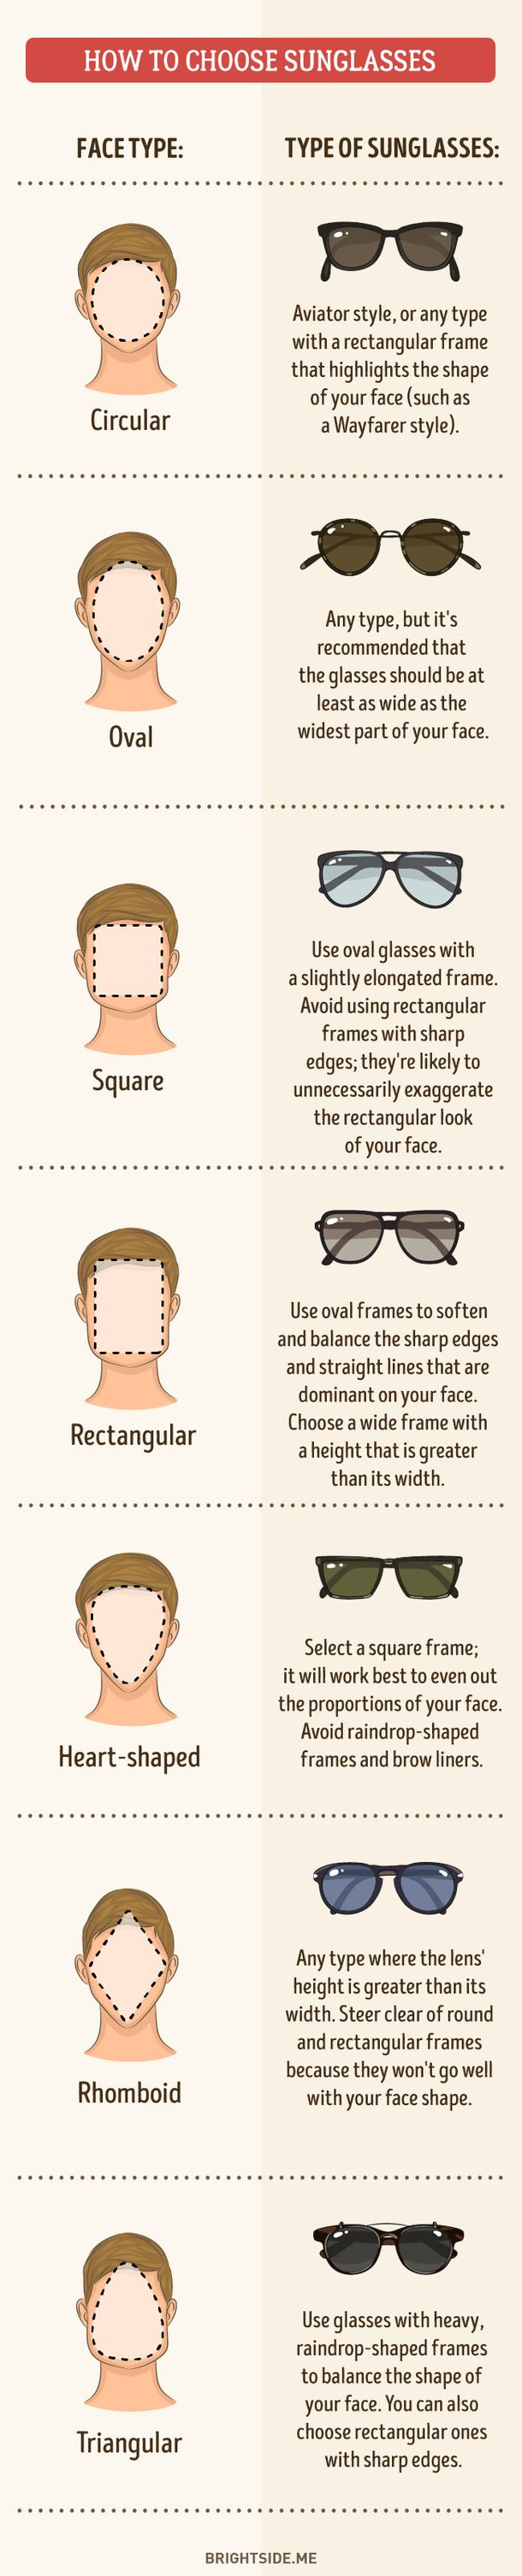 How To Chose Sunglasses Based On Your Face Type fashion sunglasses style spring fashion fashion ideas fashion trends viral